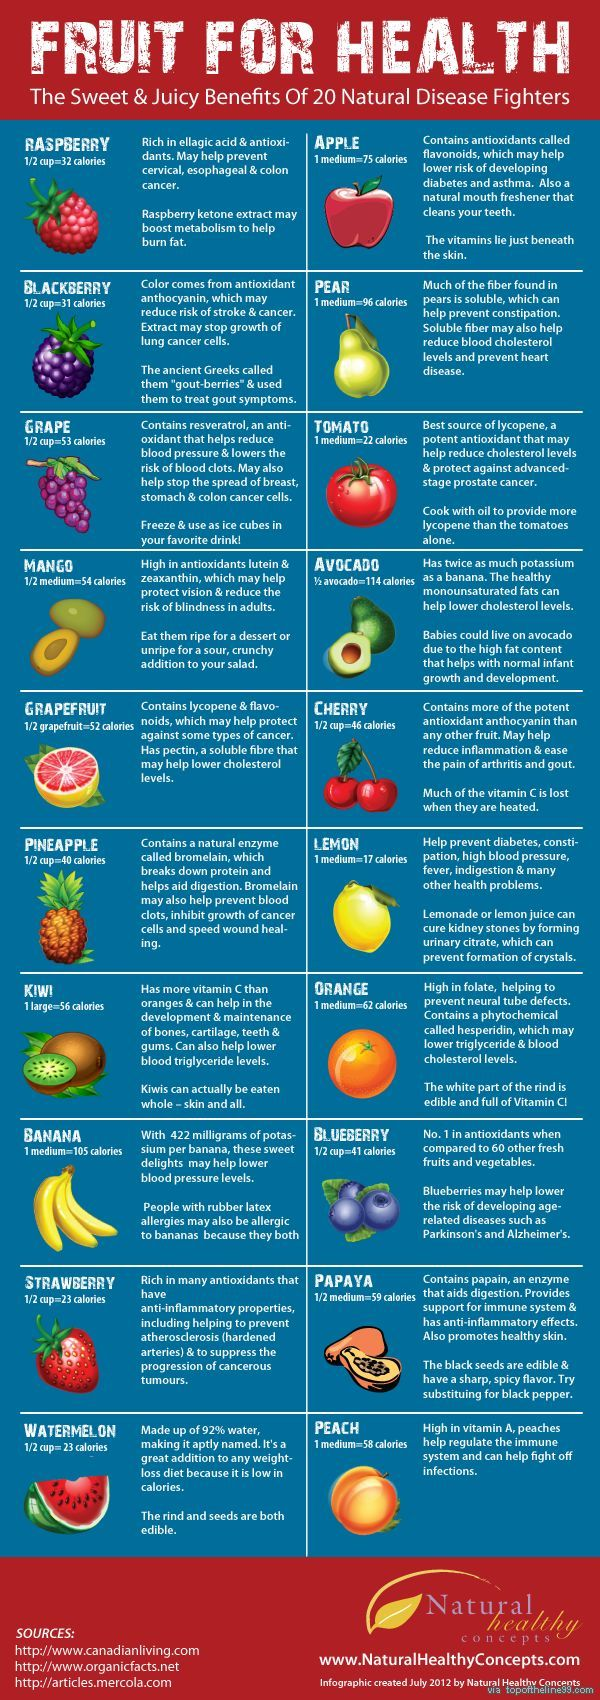 Balanced Meals: Fruit for Health Infographic - Best Infographics